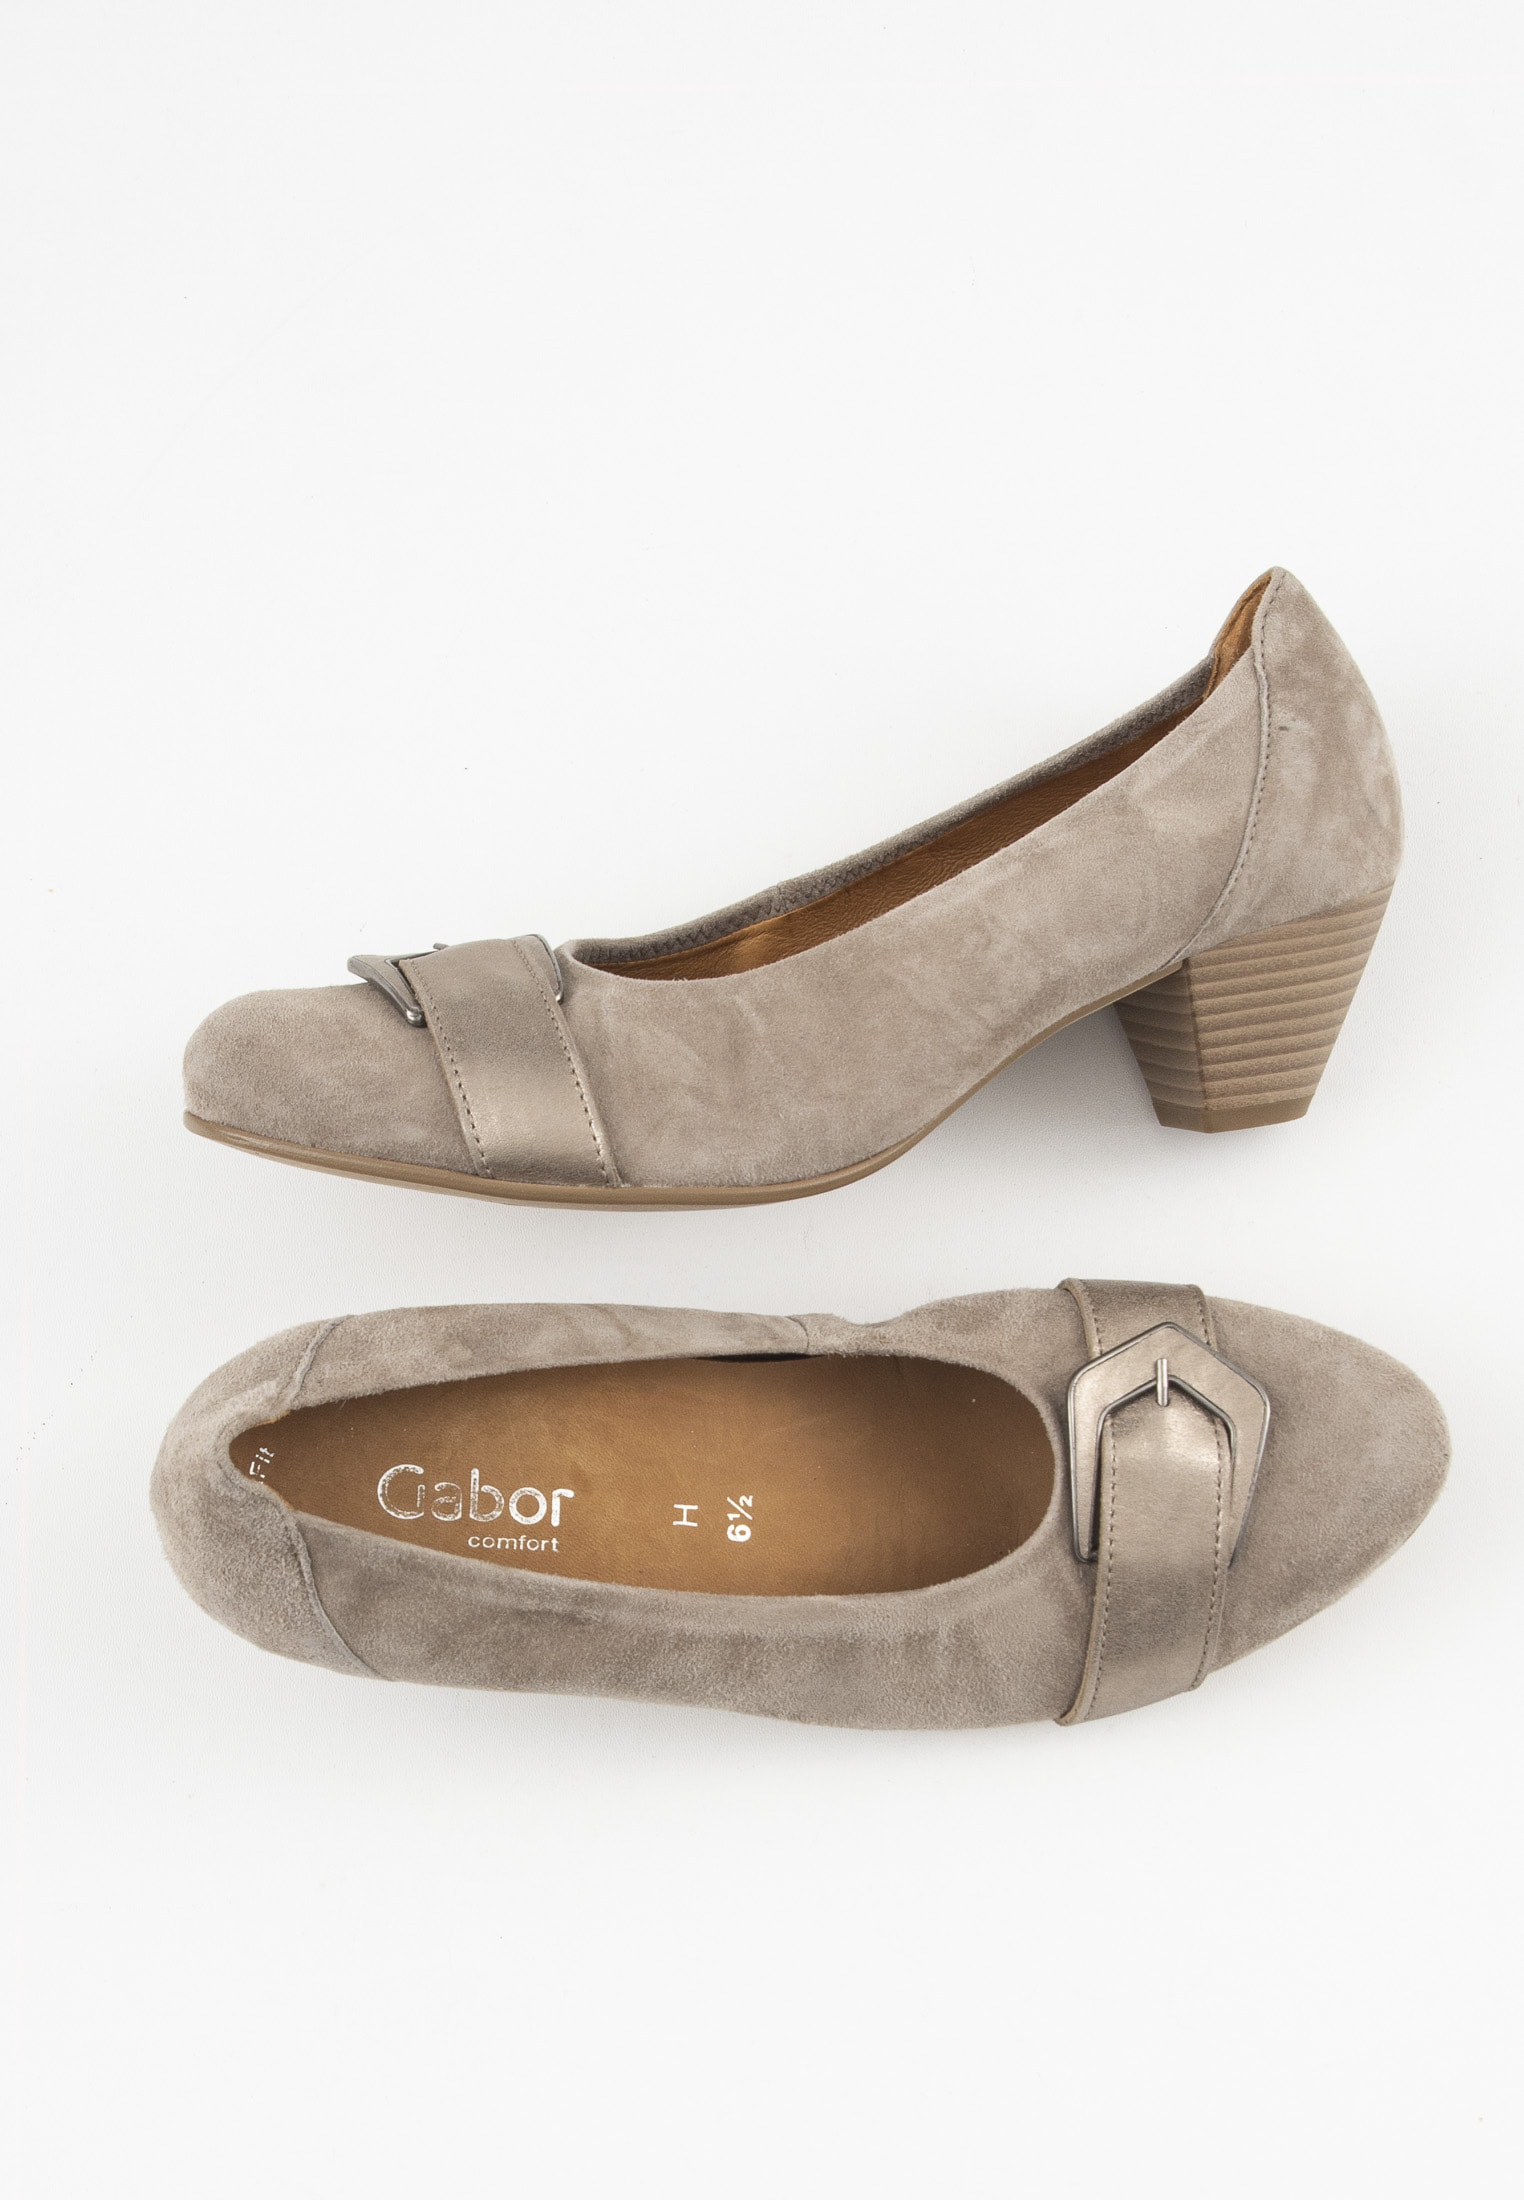 Gabor pumps, grå, 40